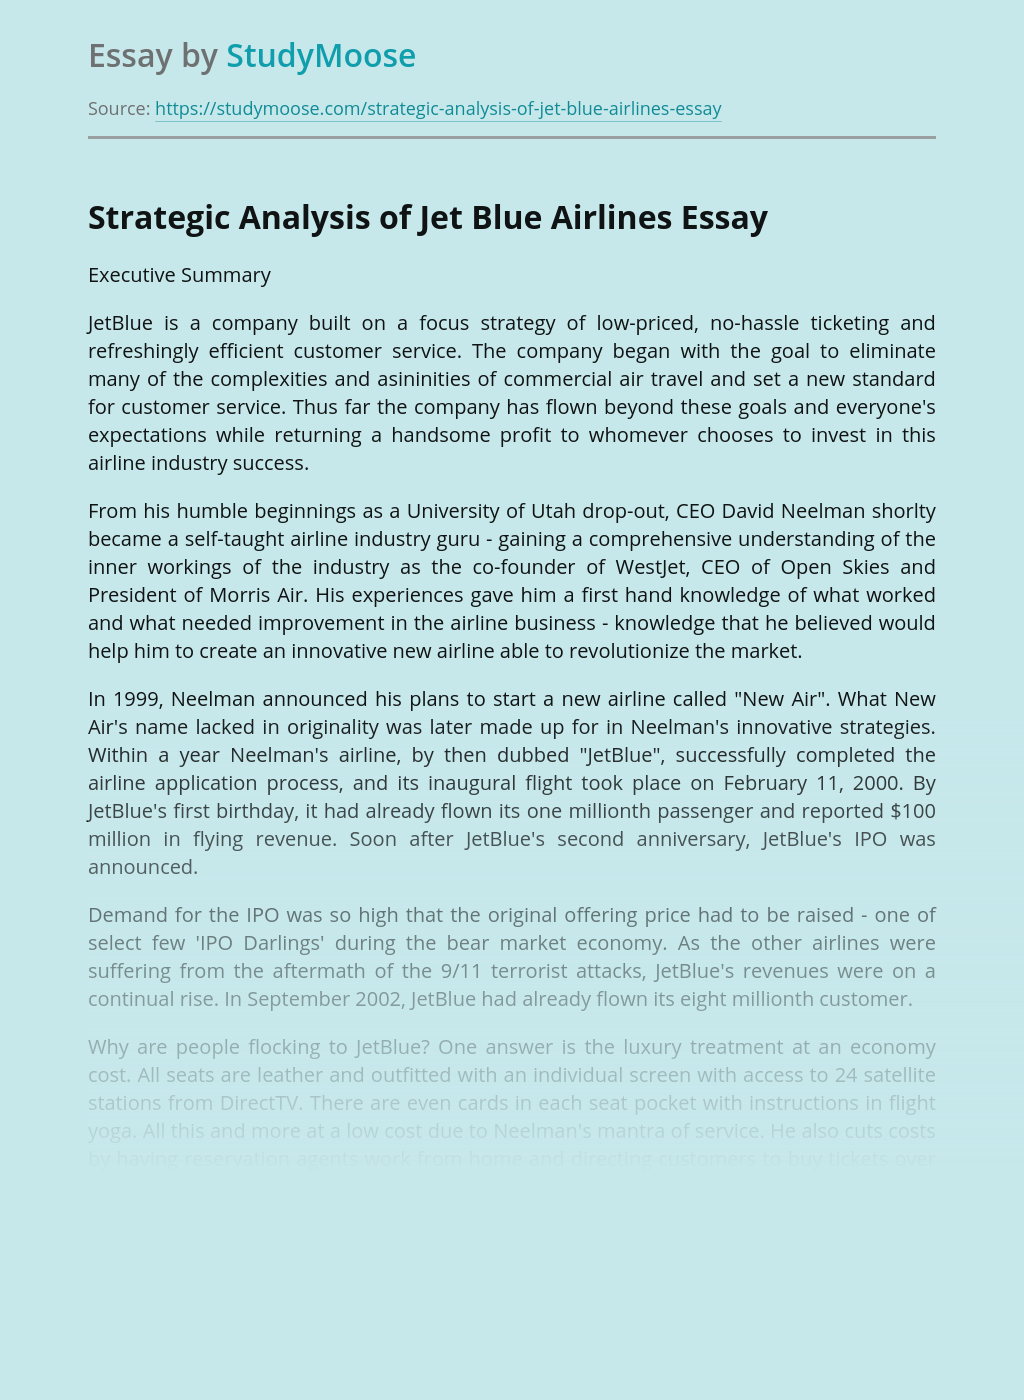 Strategic Analysis of Jet Blue Airlines